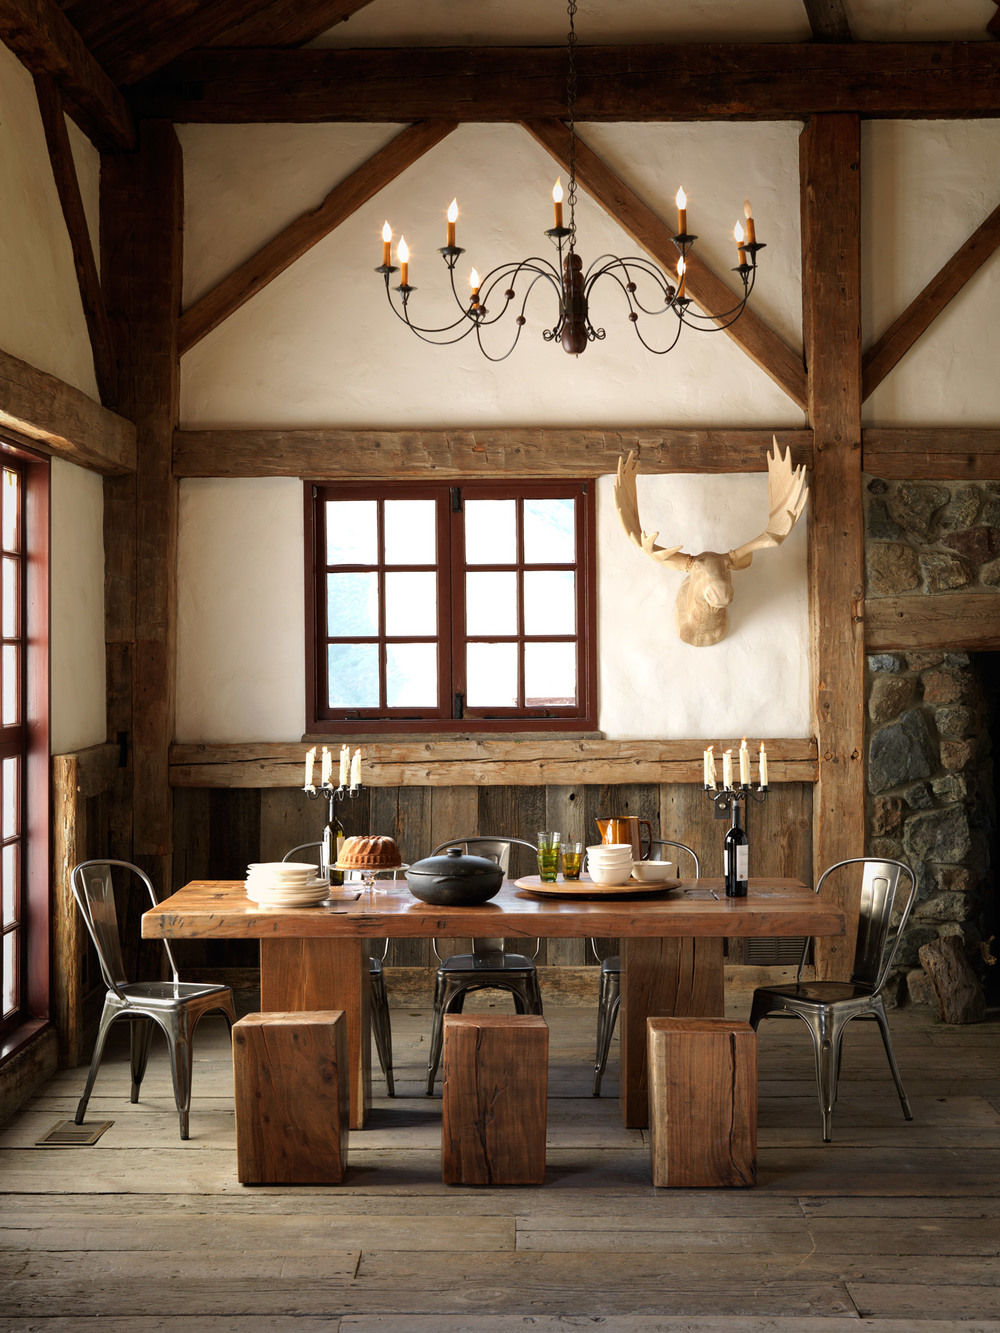 Product Photography Spaces Derek Israelsen Rustic Lodge Dining